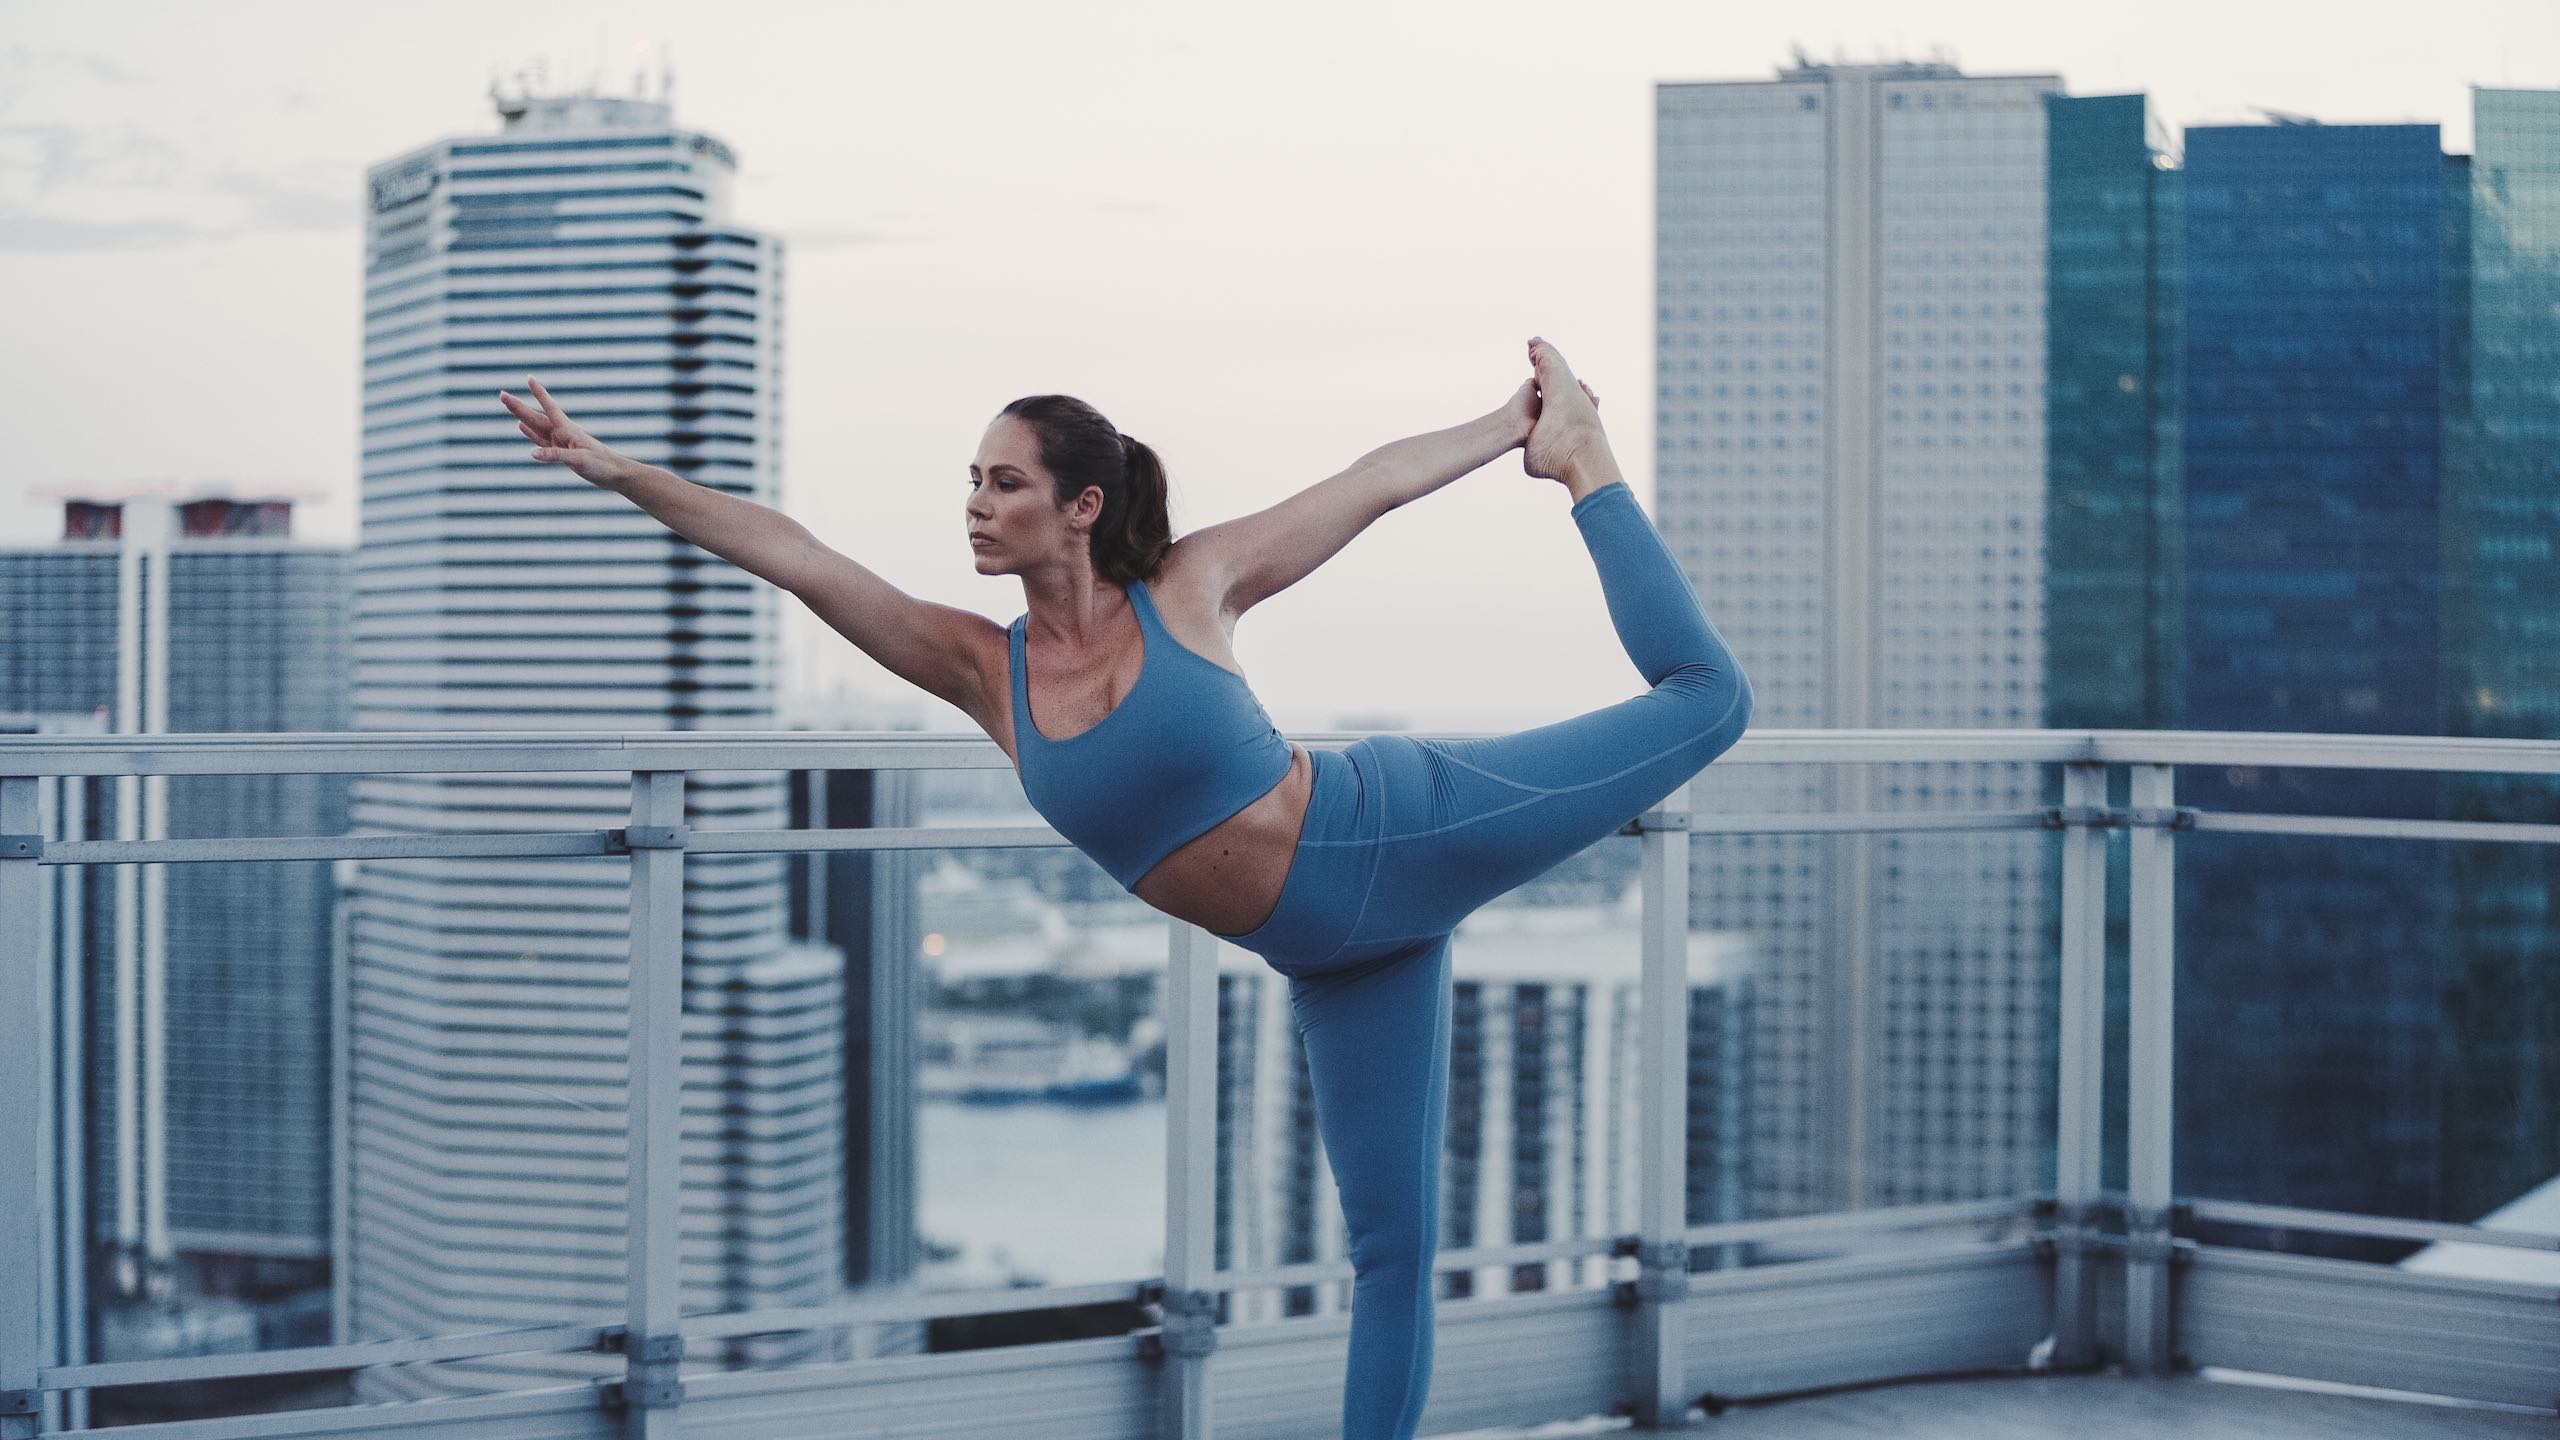 Woman Doing Yoga With City Backdrop